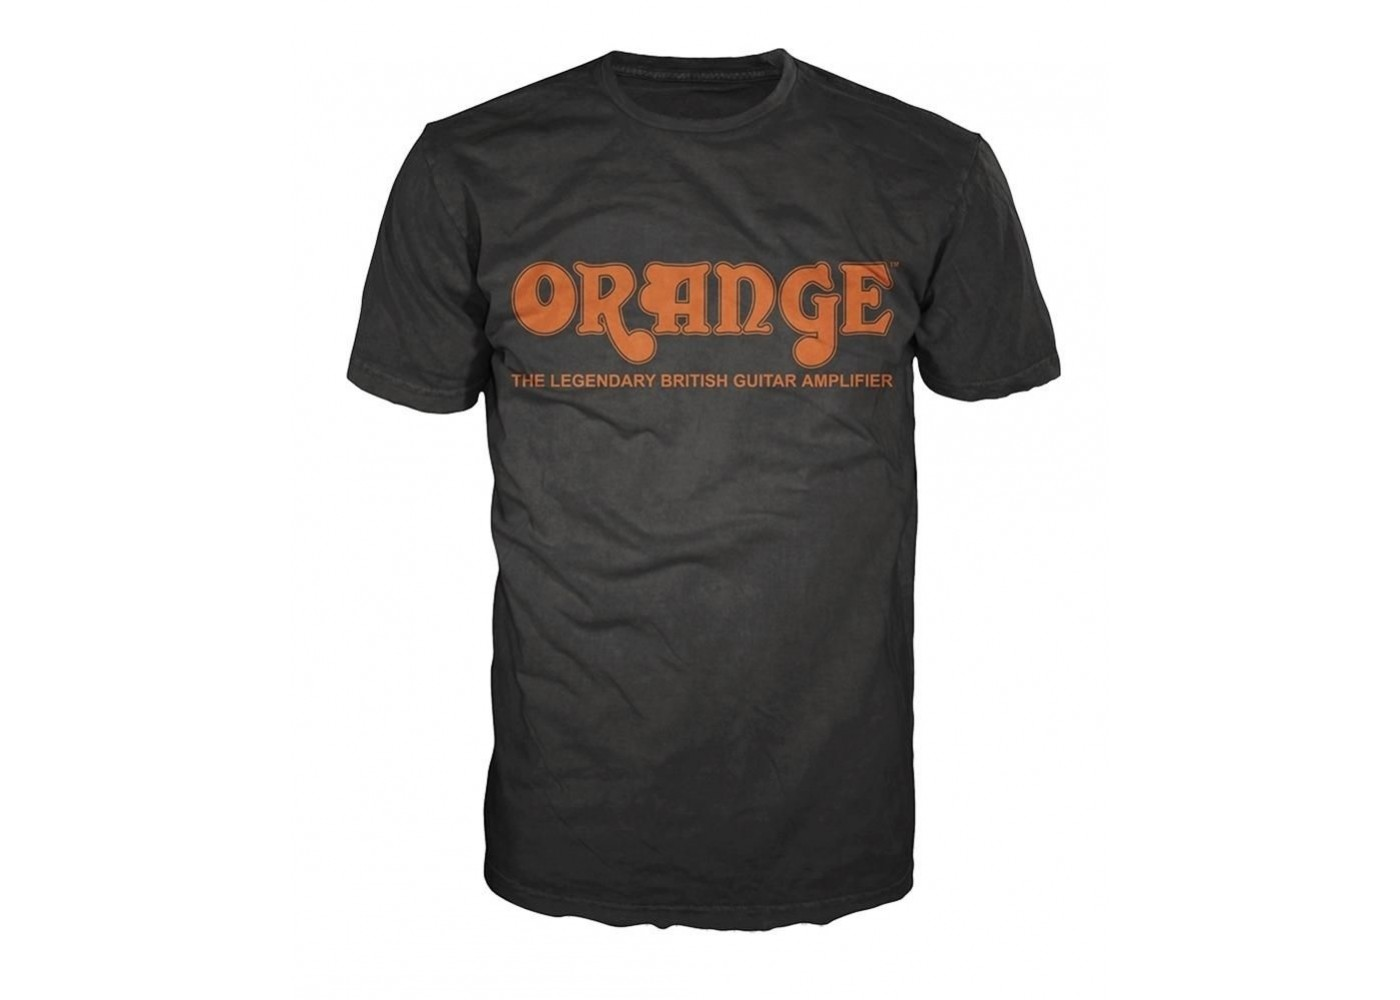 orange amplifiers black retro logo fitted 100 cotton t shirt men 39 s medium new. Black Bedroom Furniture Sets. Home Design Ideas